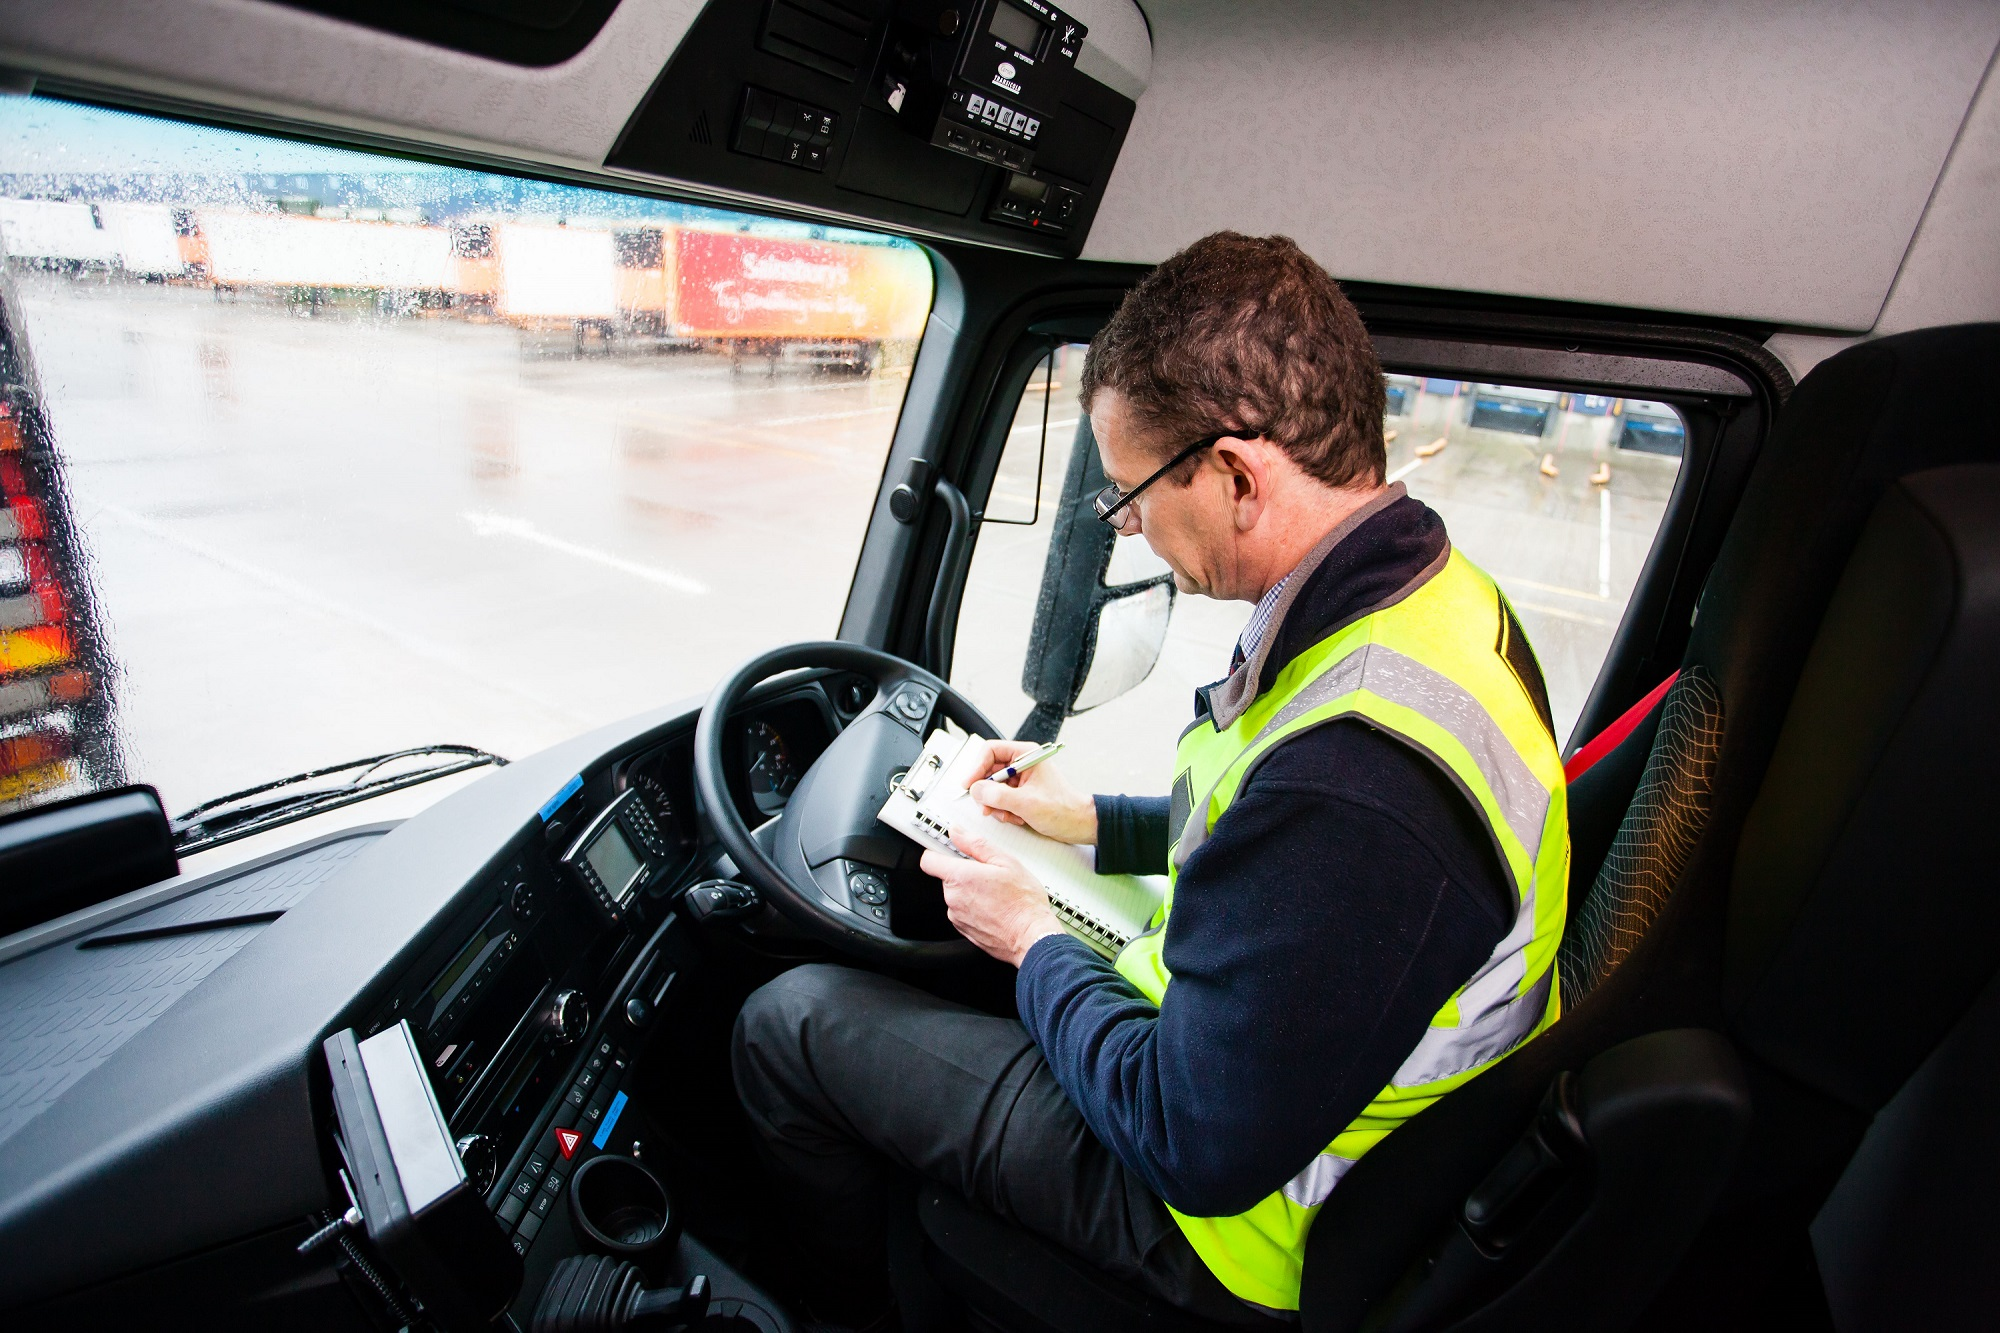 4 Reasons to Have a Qualified LGV Instructor That You May Not Have Thought About